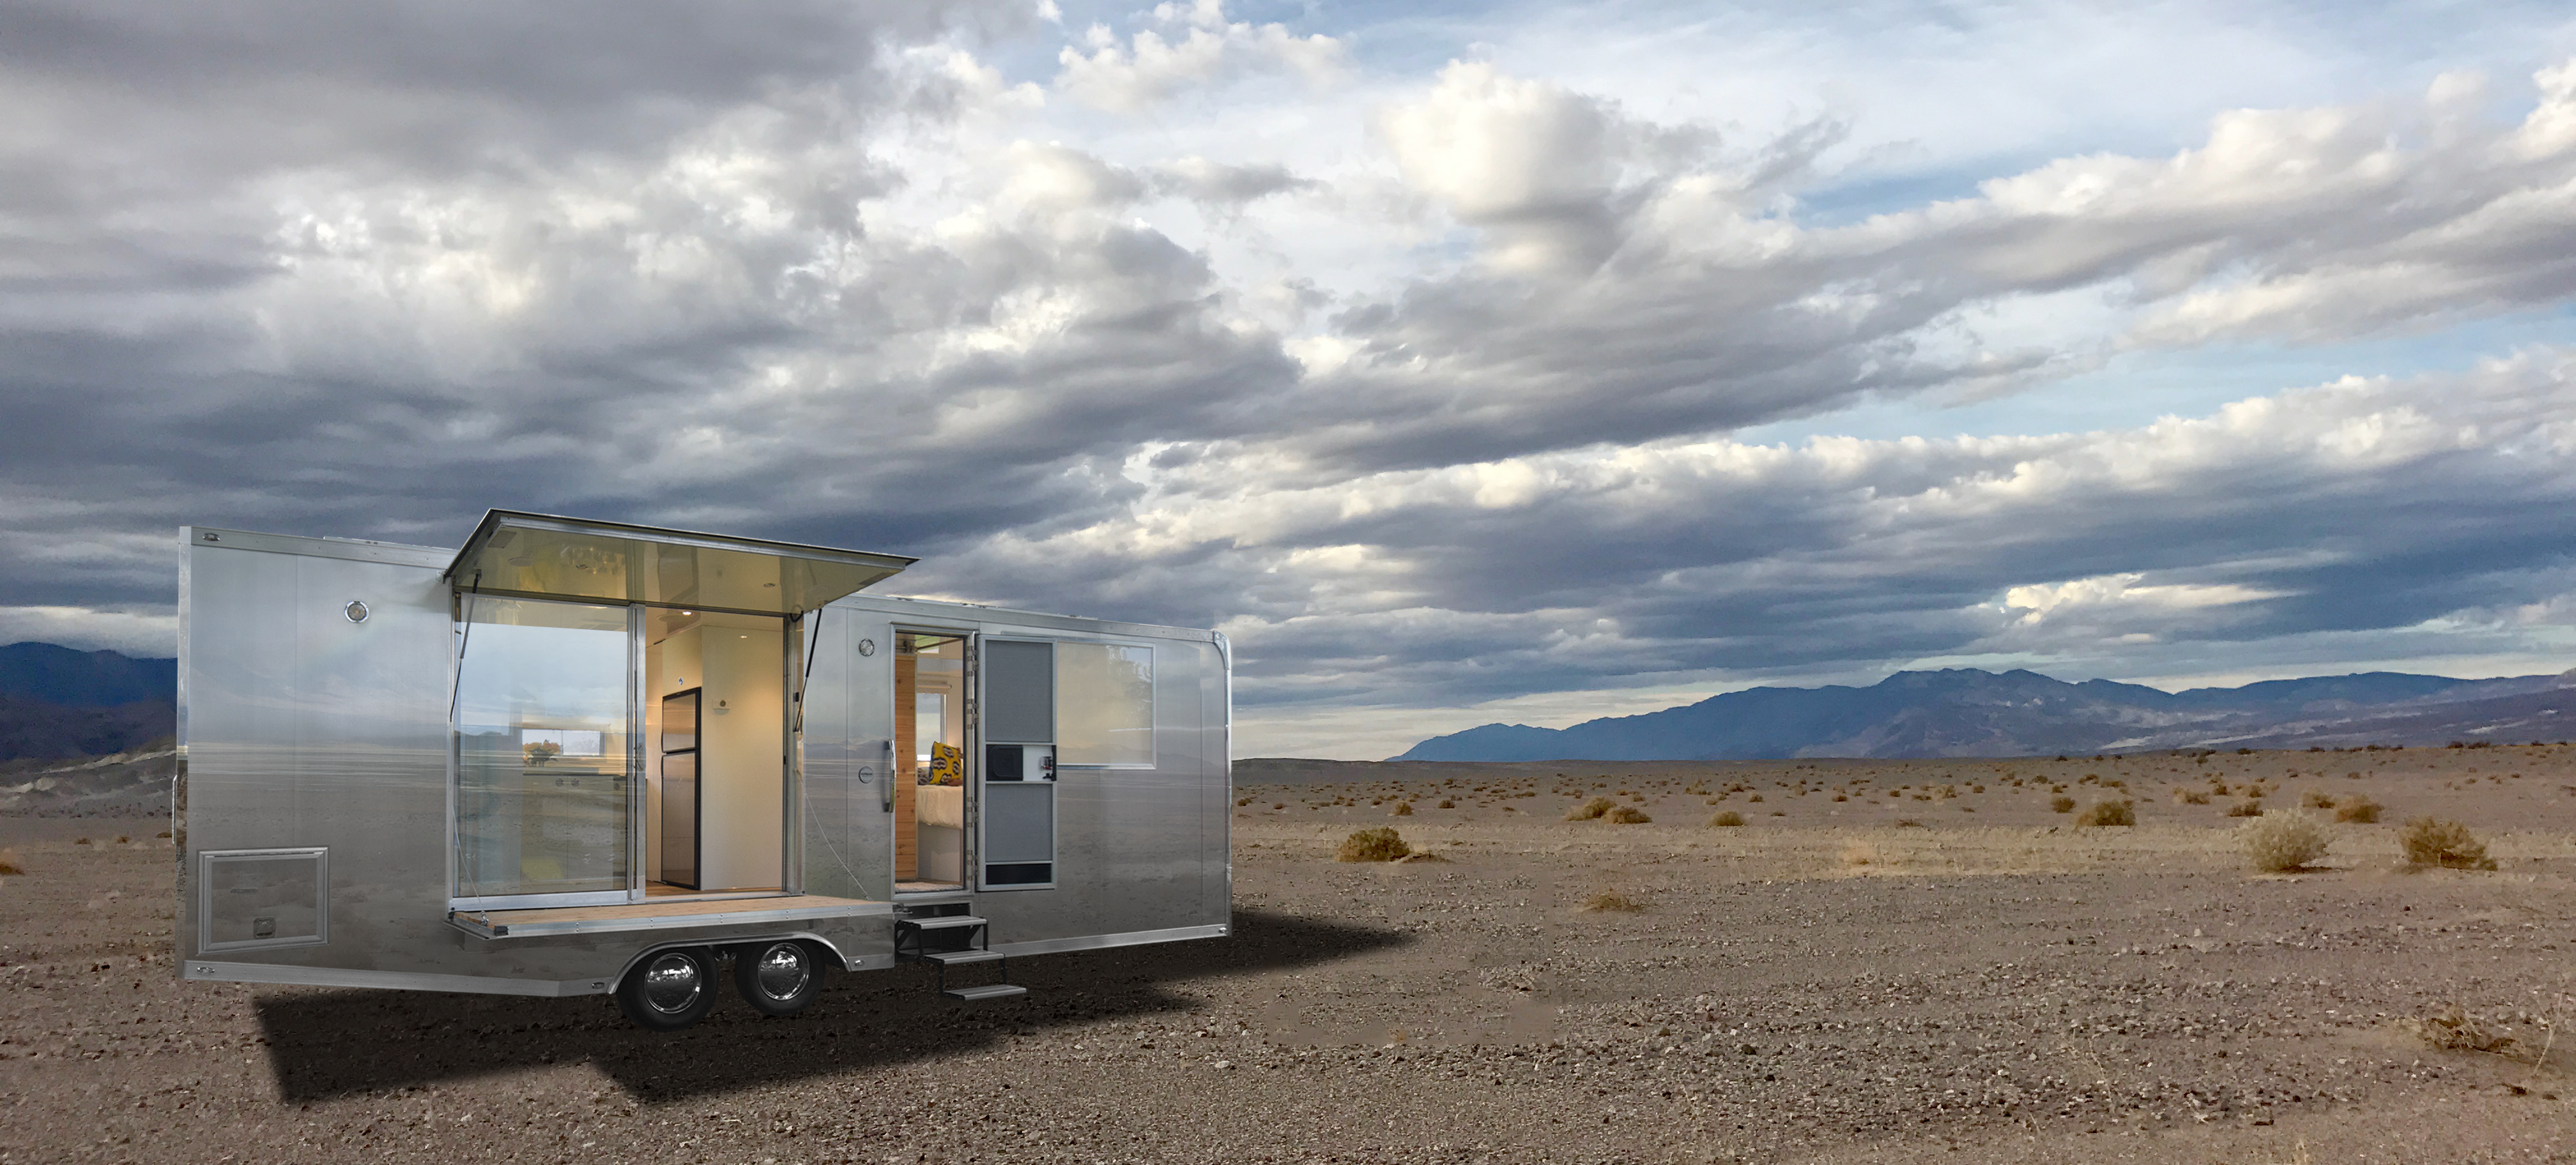 Shiny aluminum camper is built to go off-grid